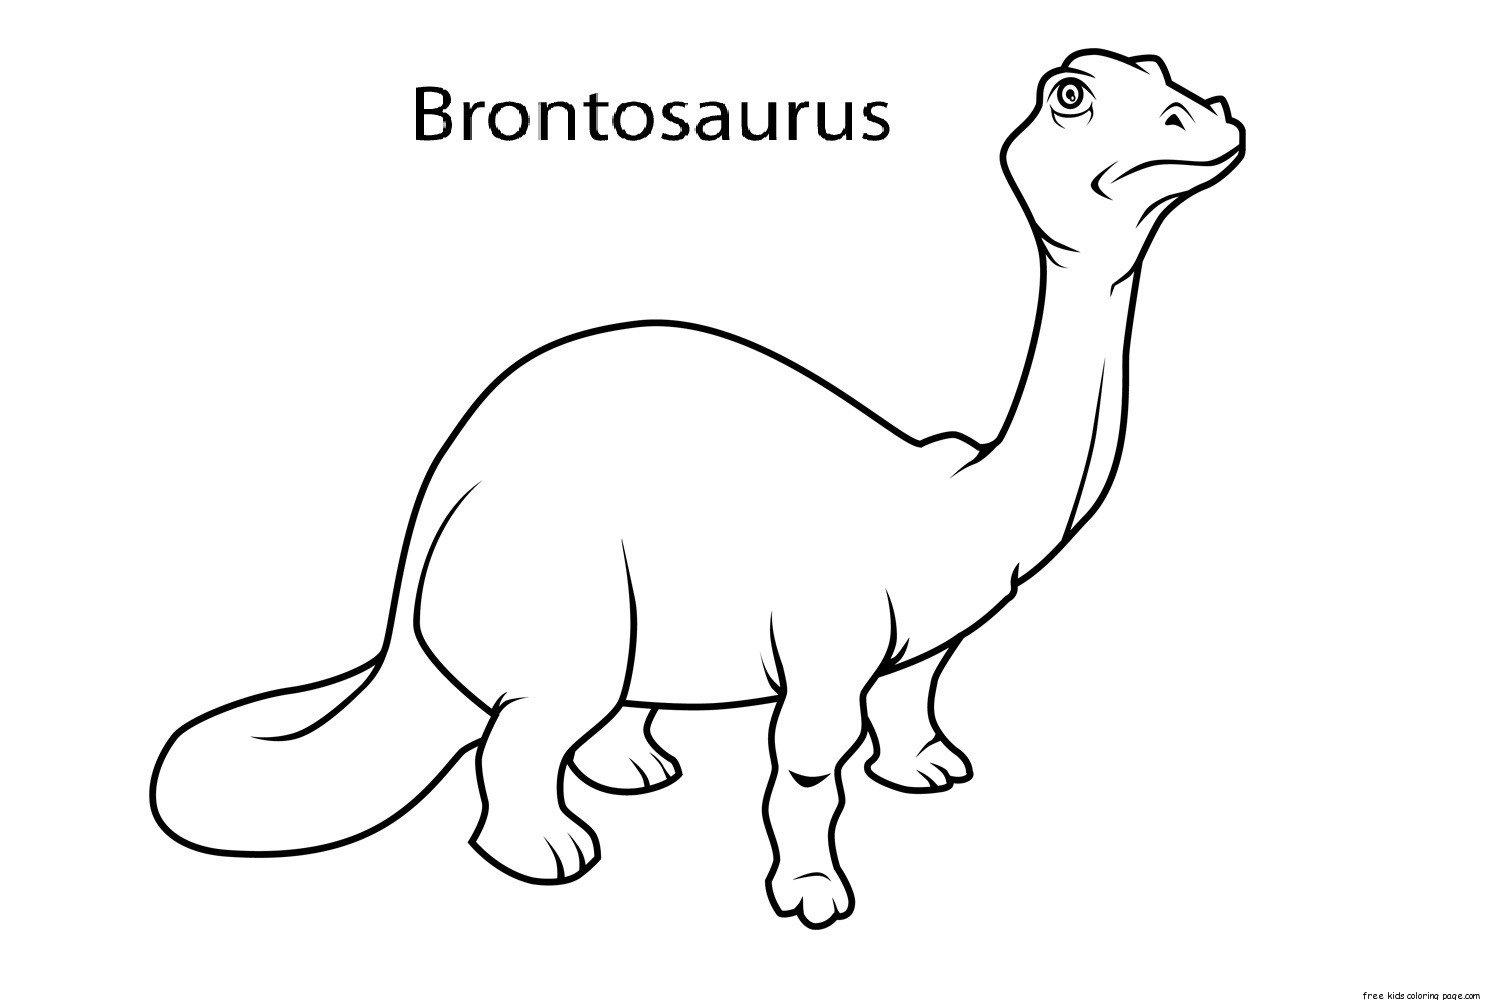 brontosaurus coloring pages - photo#23